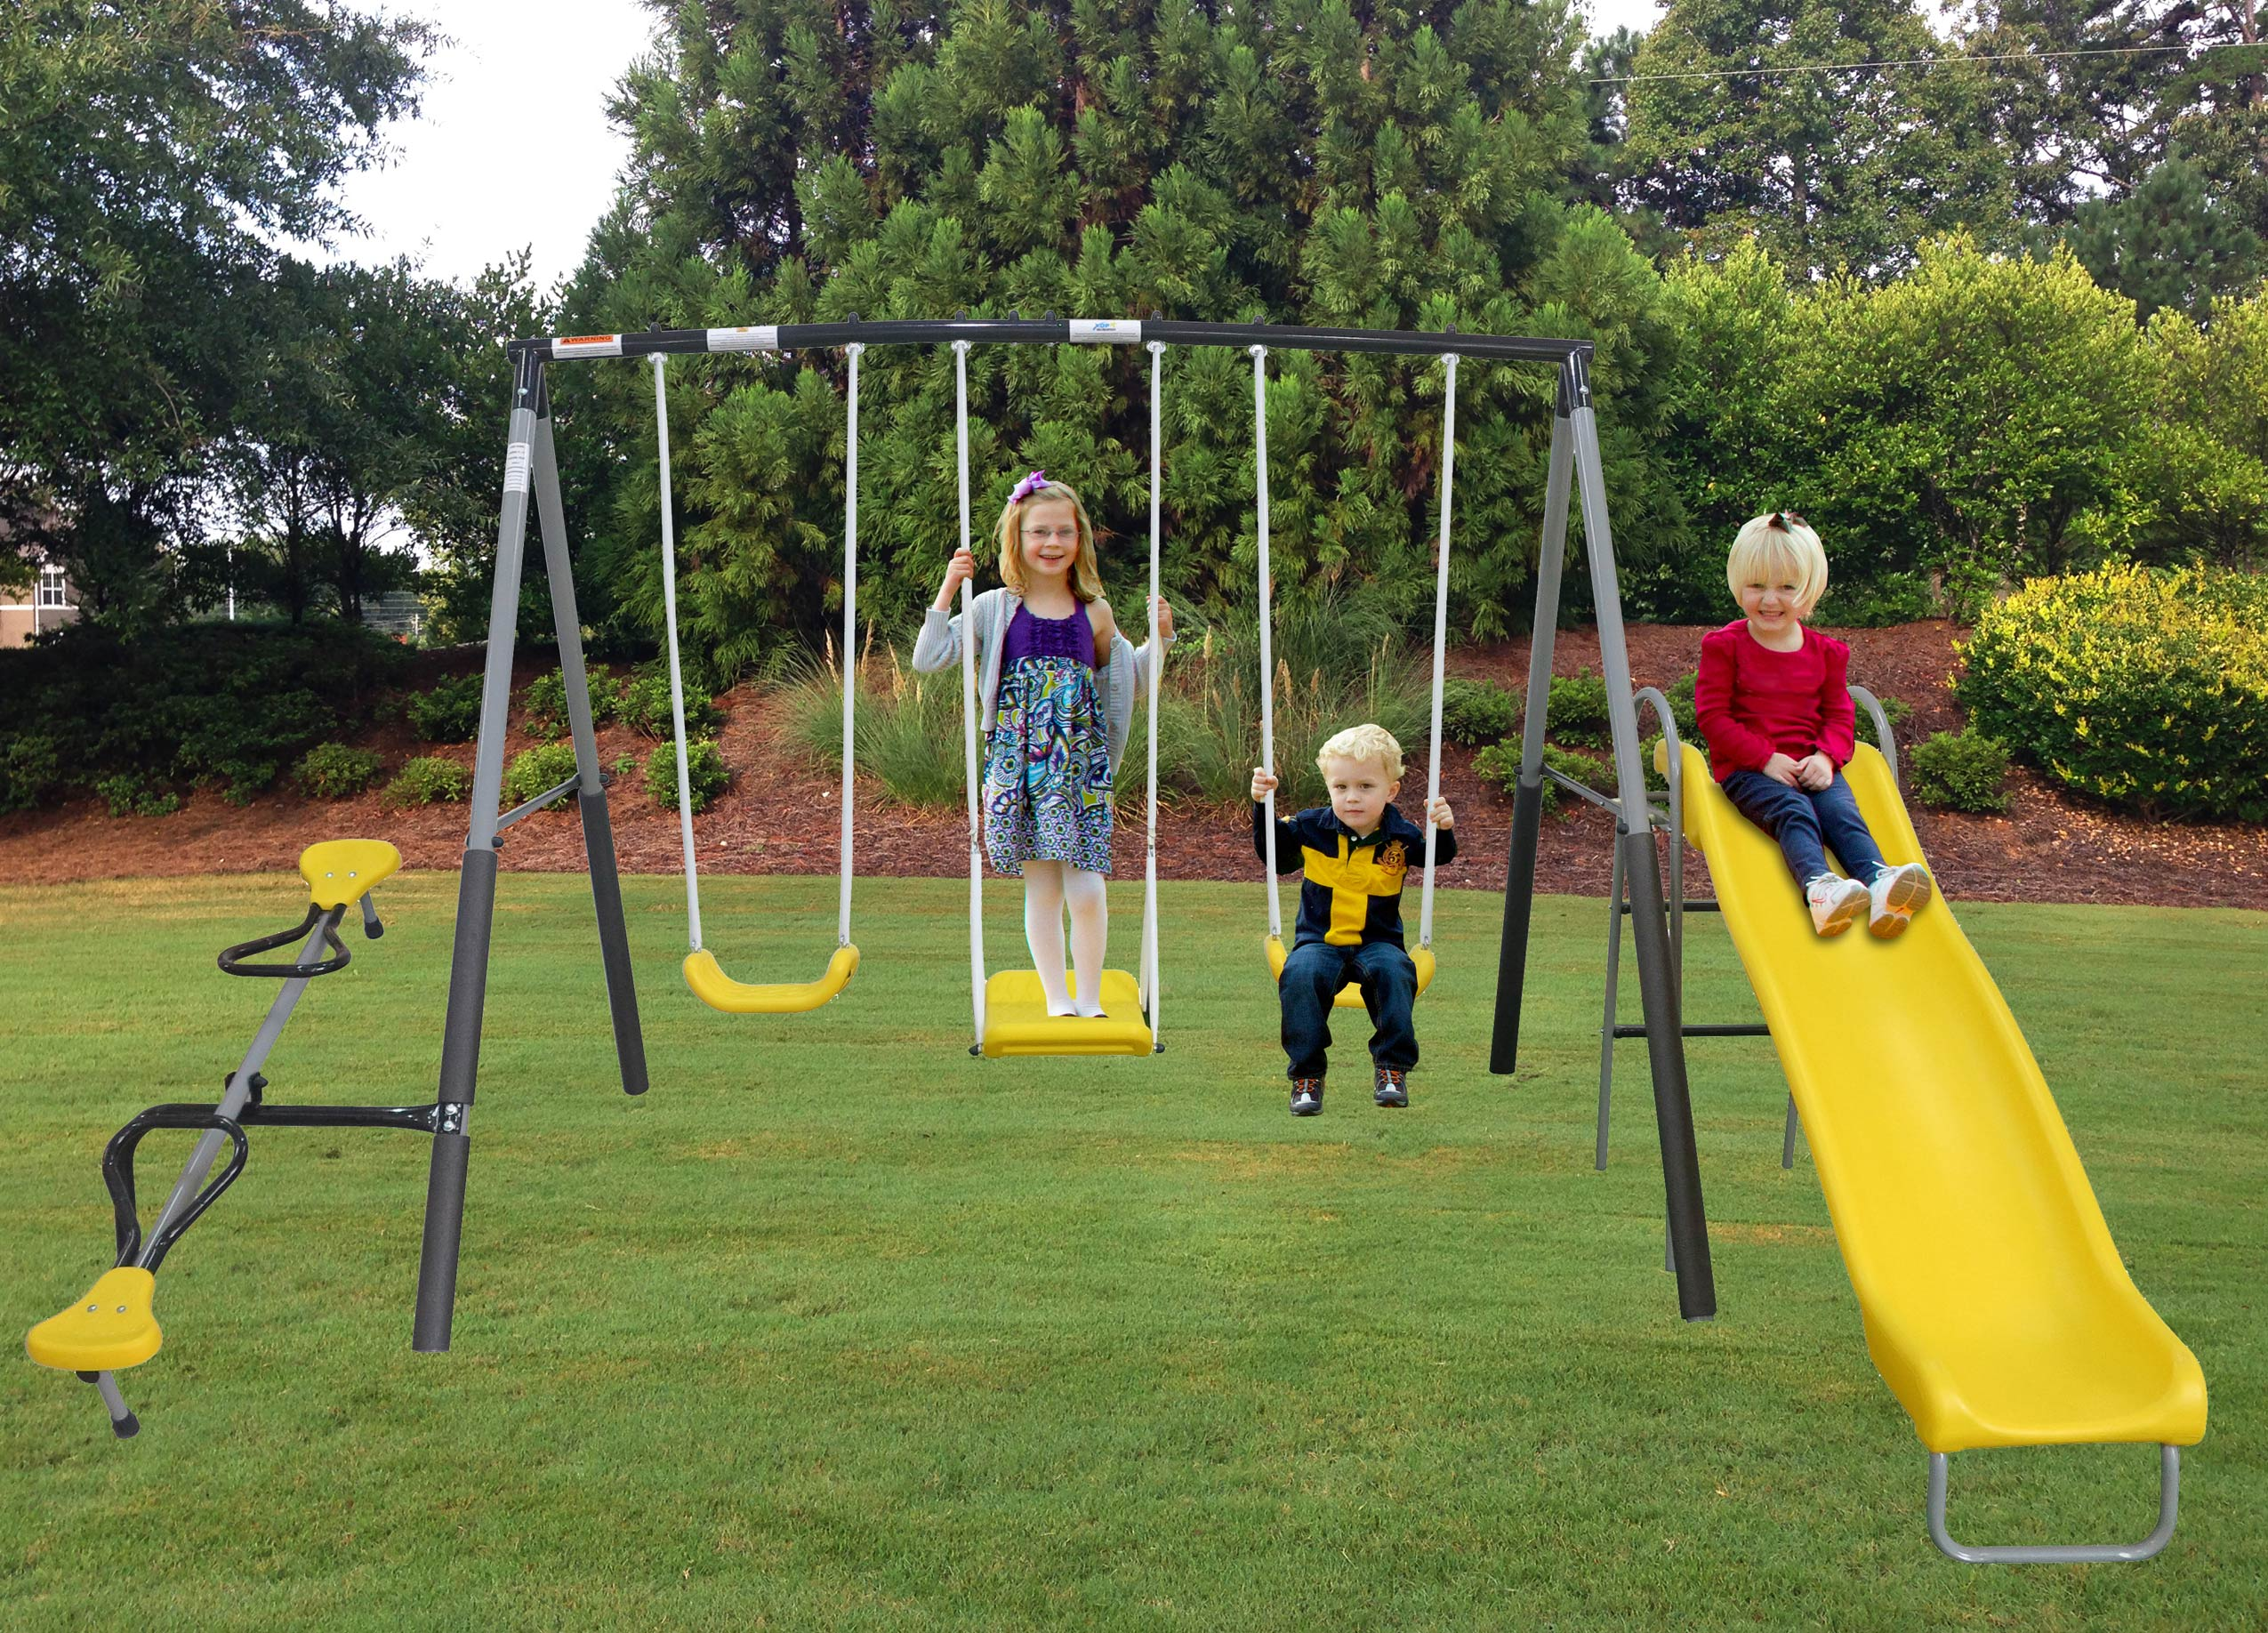 xdp recreation swing sets home